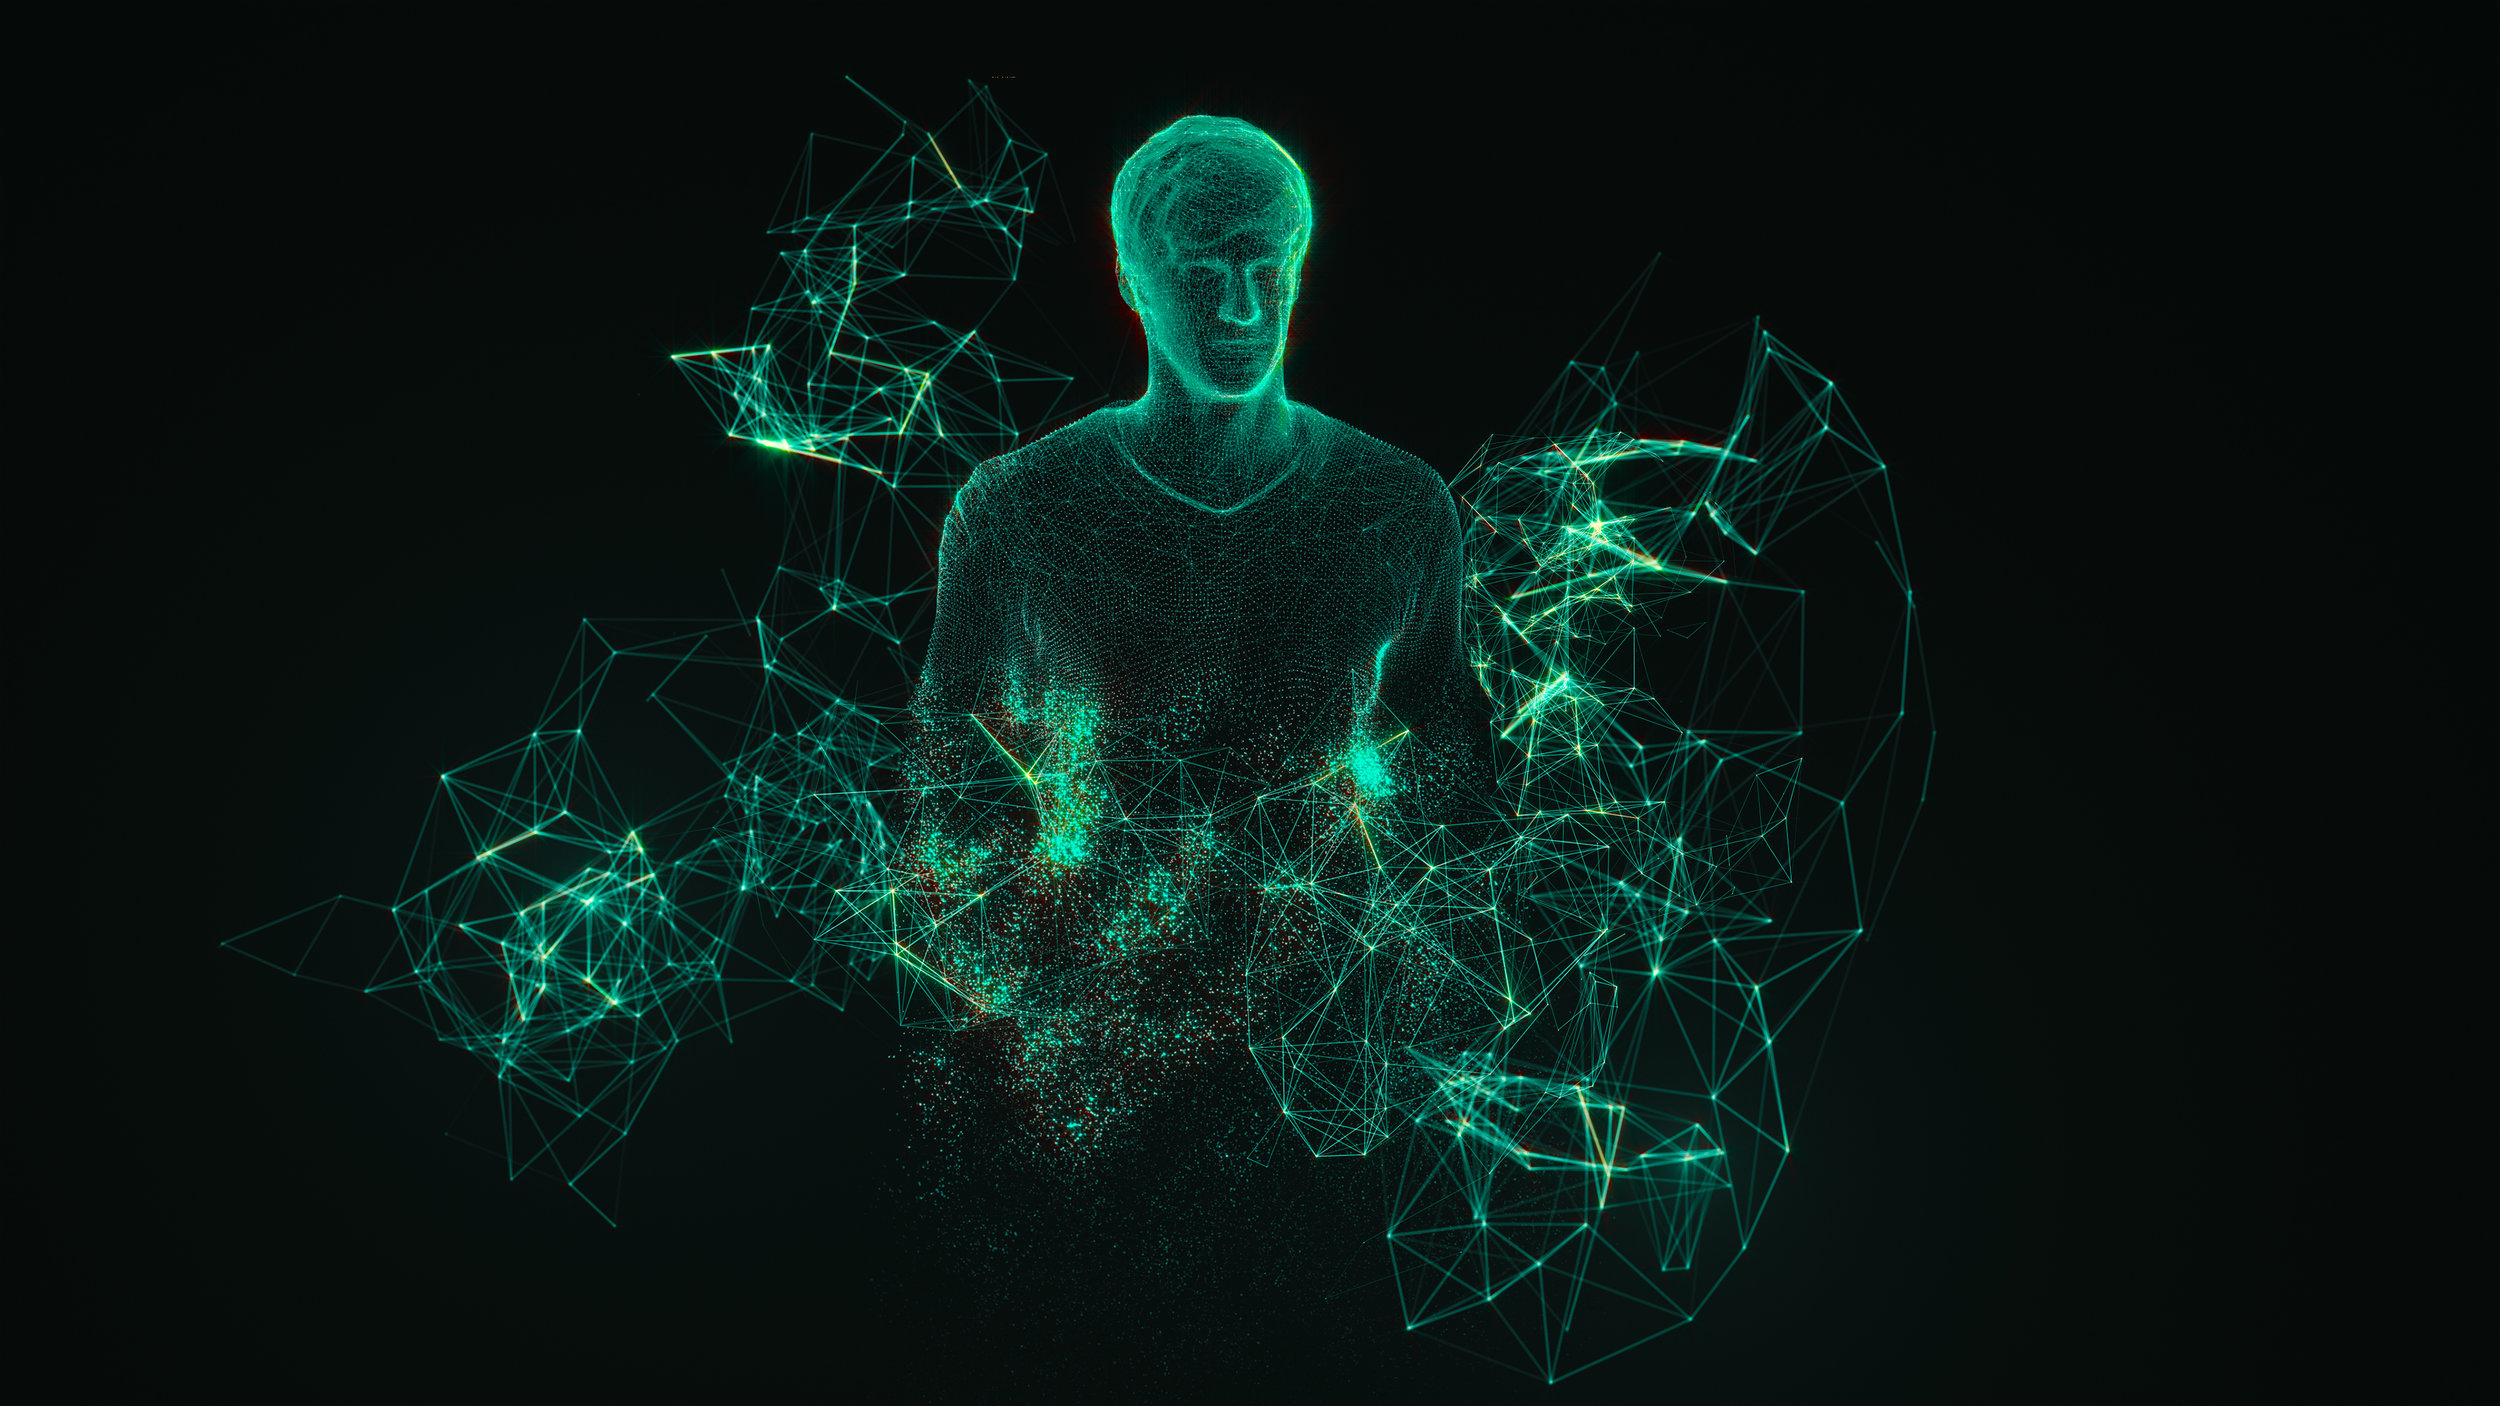 Selected keyvisual for the presentation, created in After Effect using Plexus, Trapcode Form, Trapcode Particular and two variations of the same 3D model (one triangulated and one based on quads).